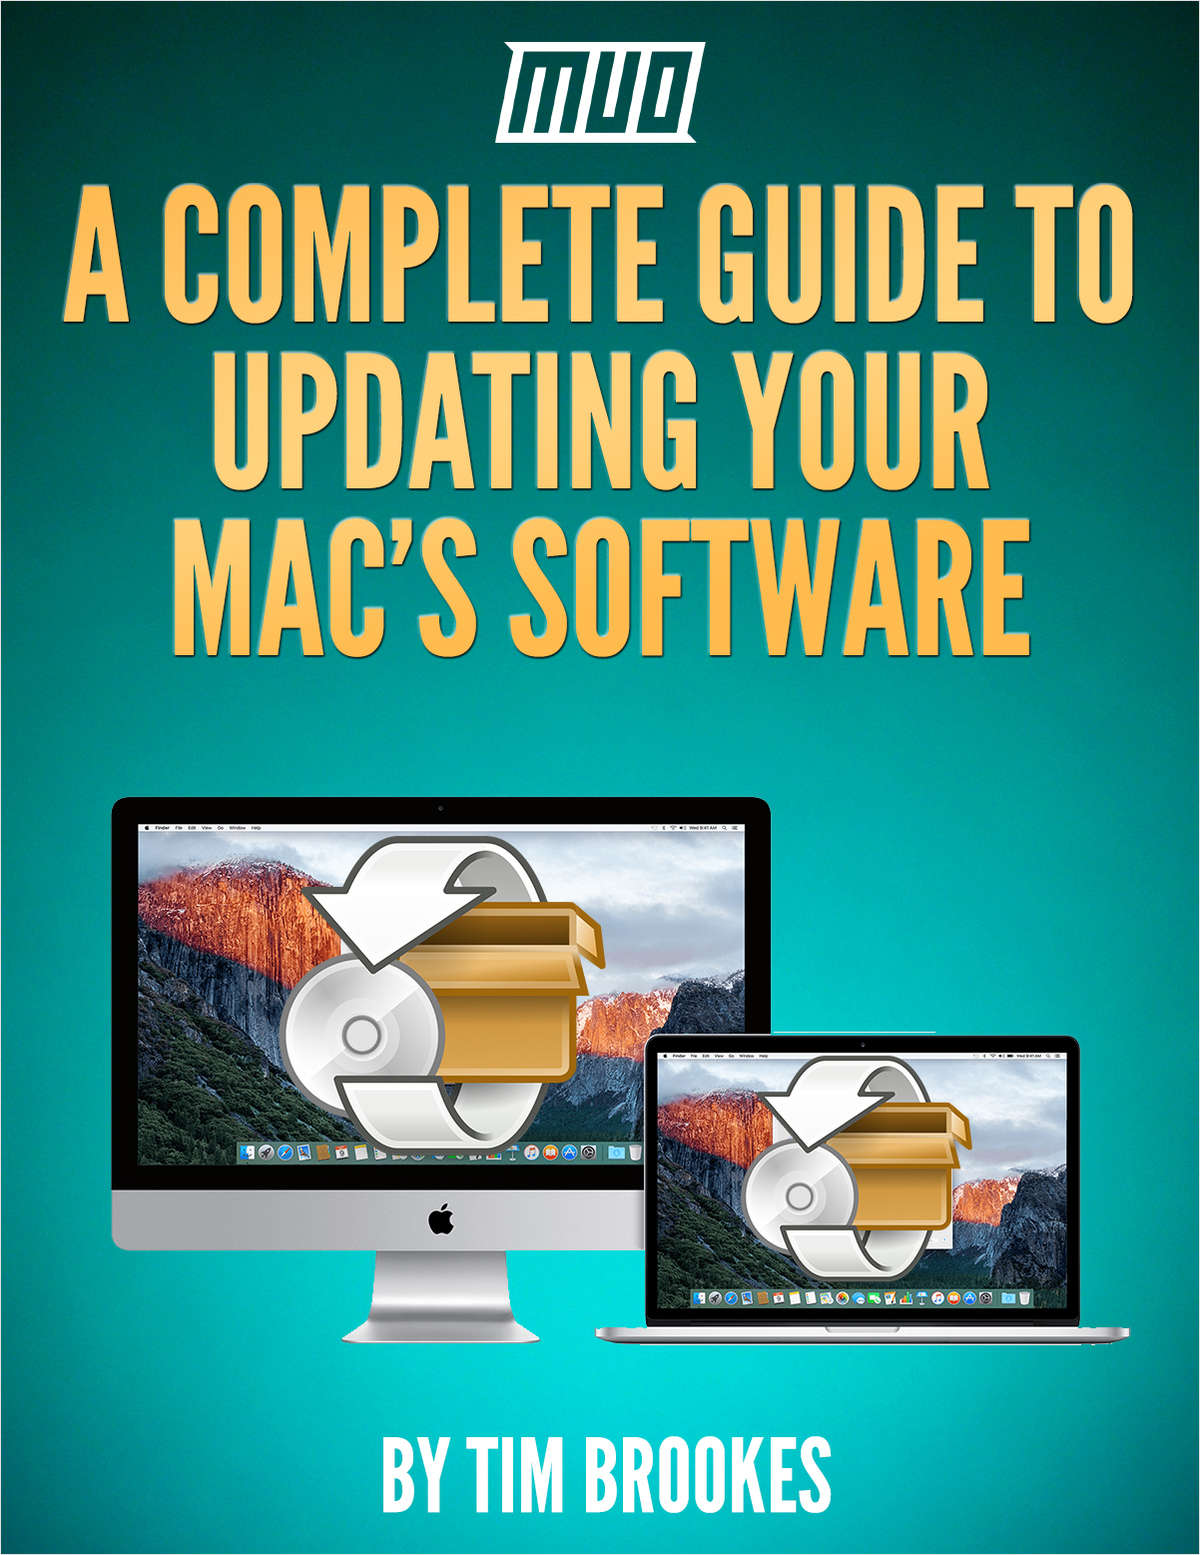 A Complete Guide to Updating Your Mac's Software